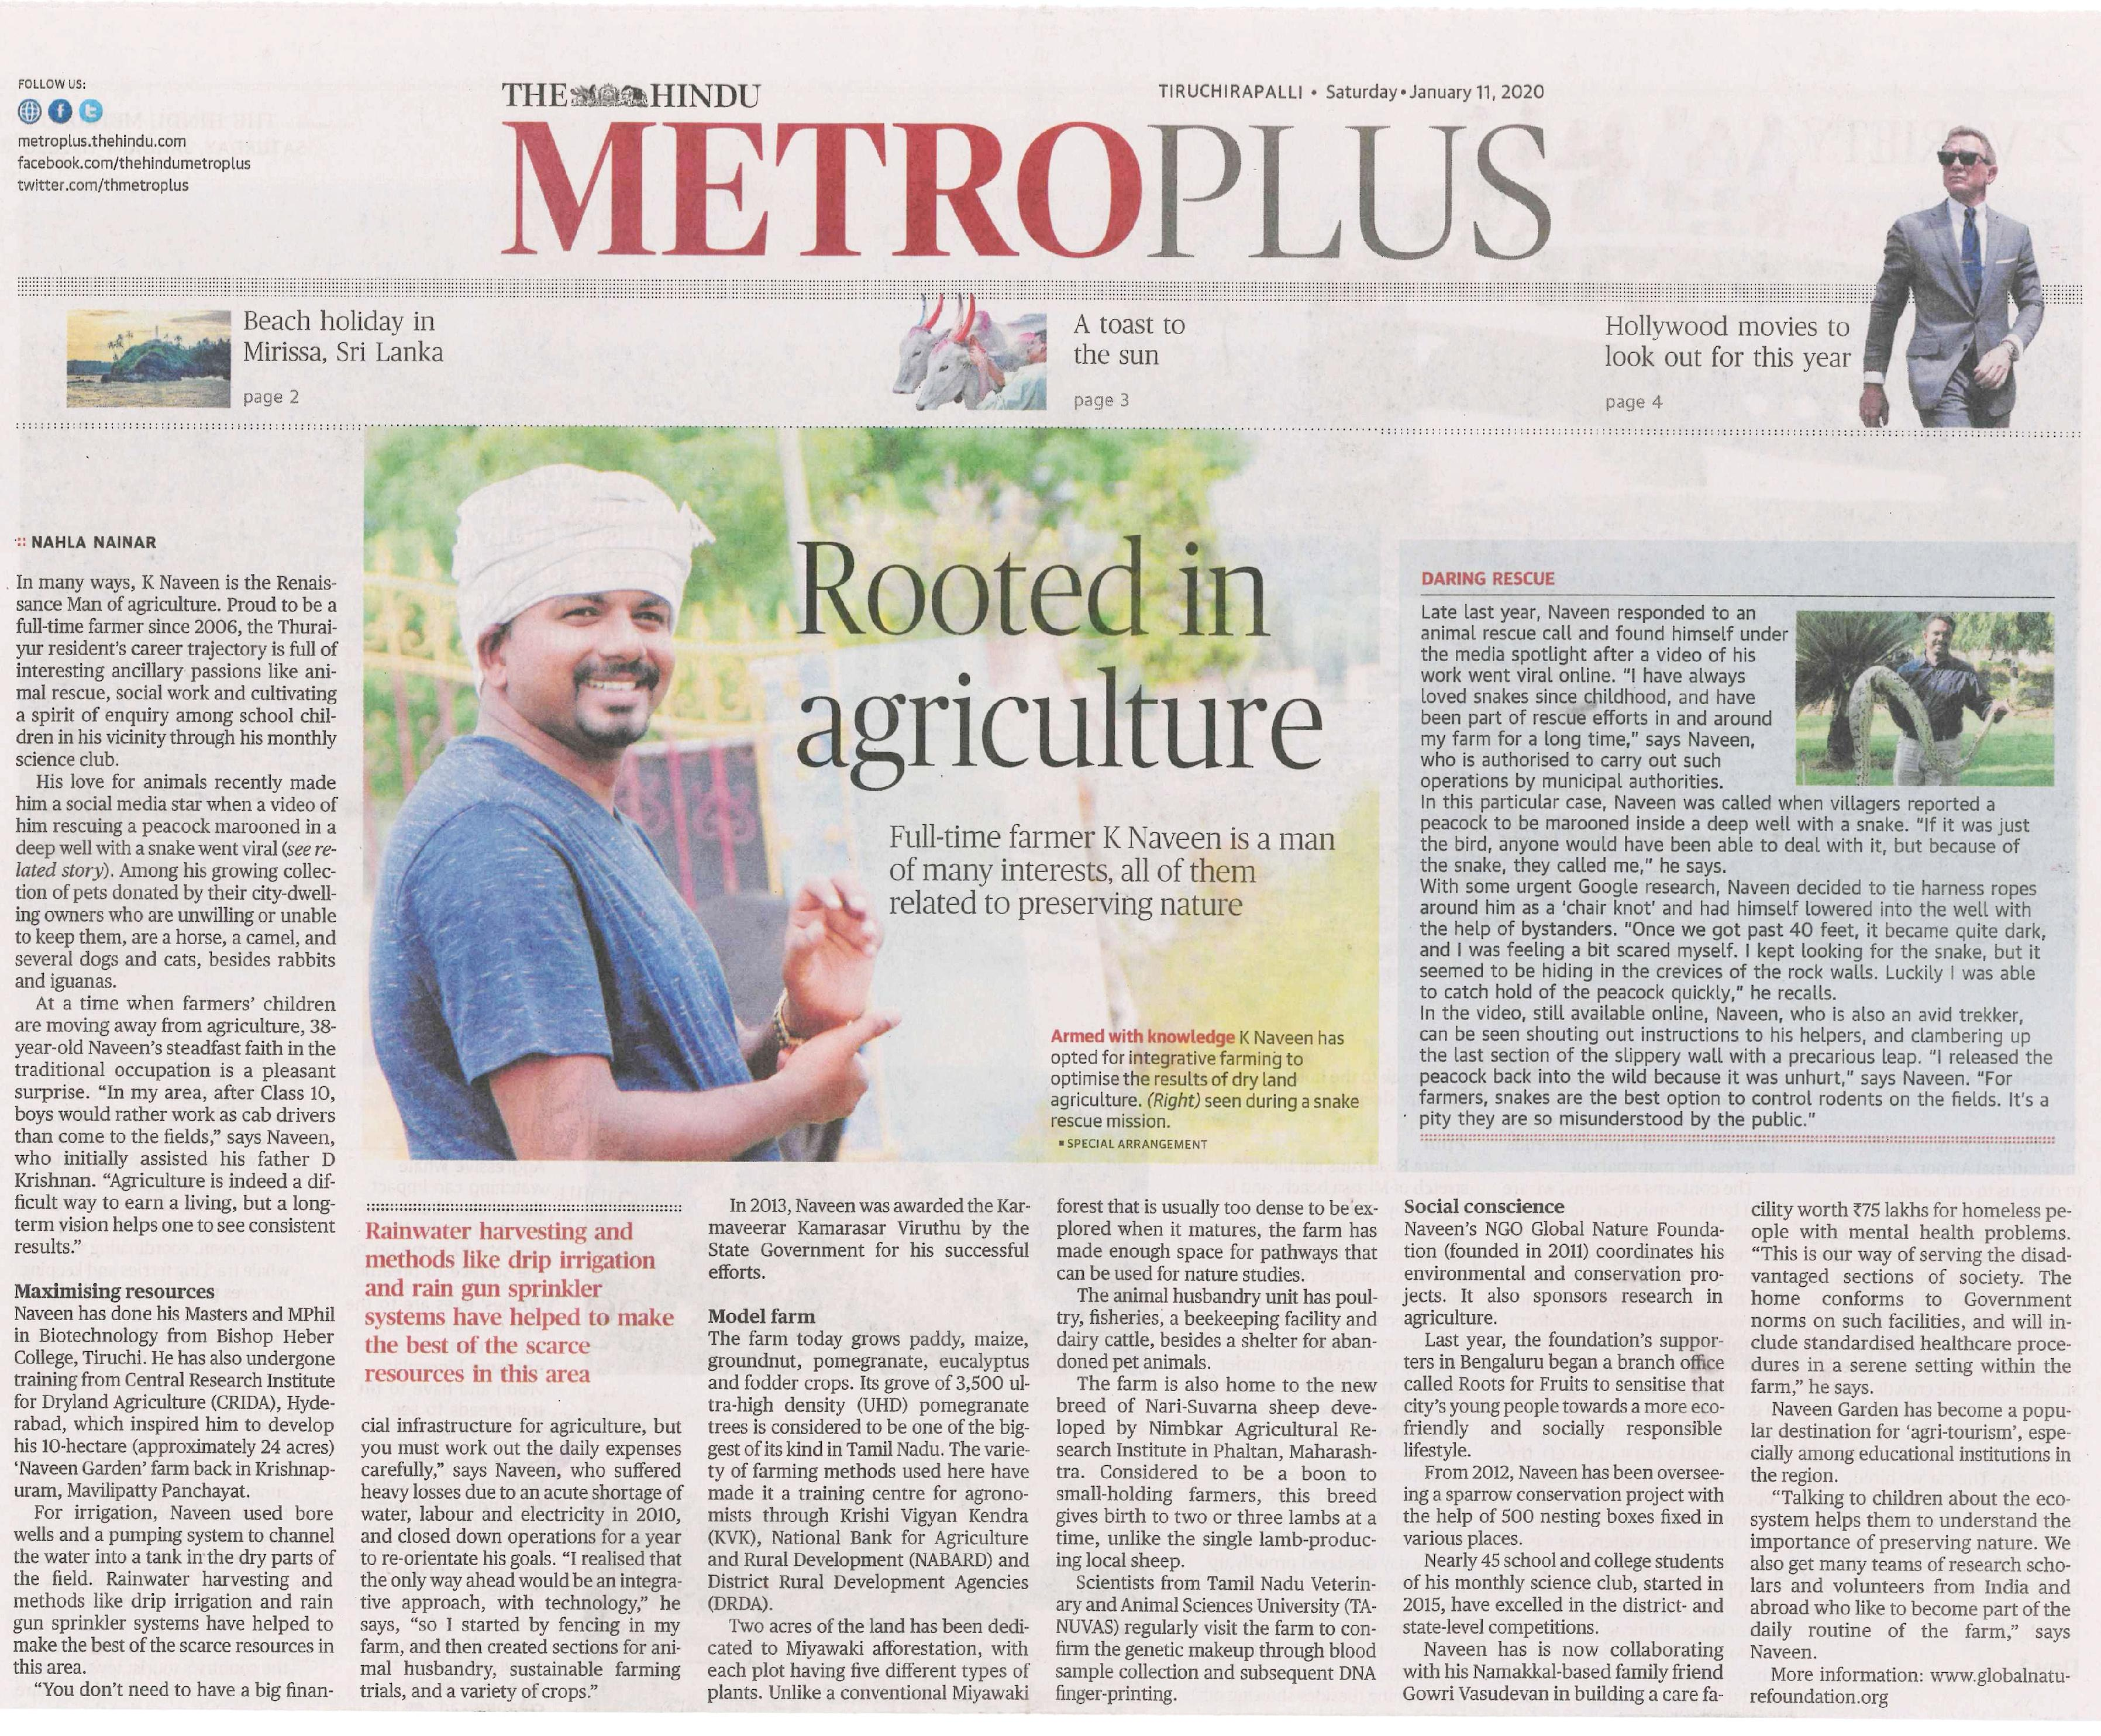 An ARTICLE has been published in THE HINDU METRO PLUS